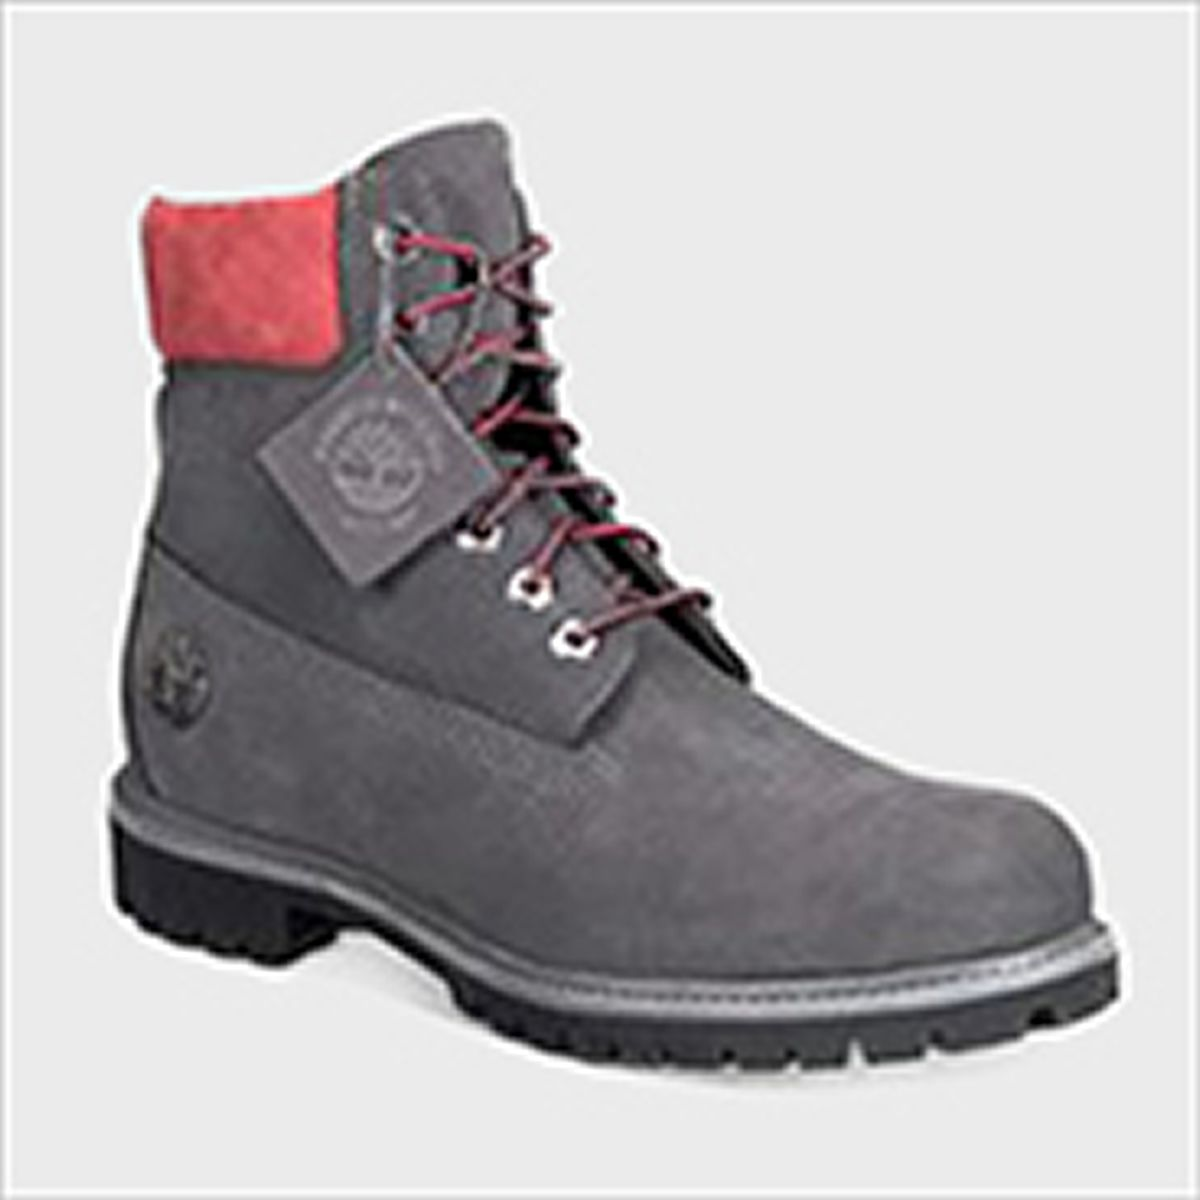 cc98a1bcaa8b Timberland Boots and Shoes For Men - Macy s